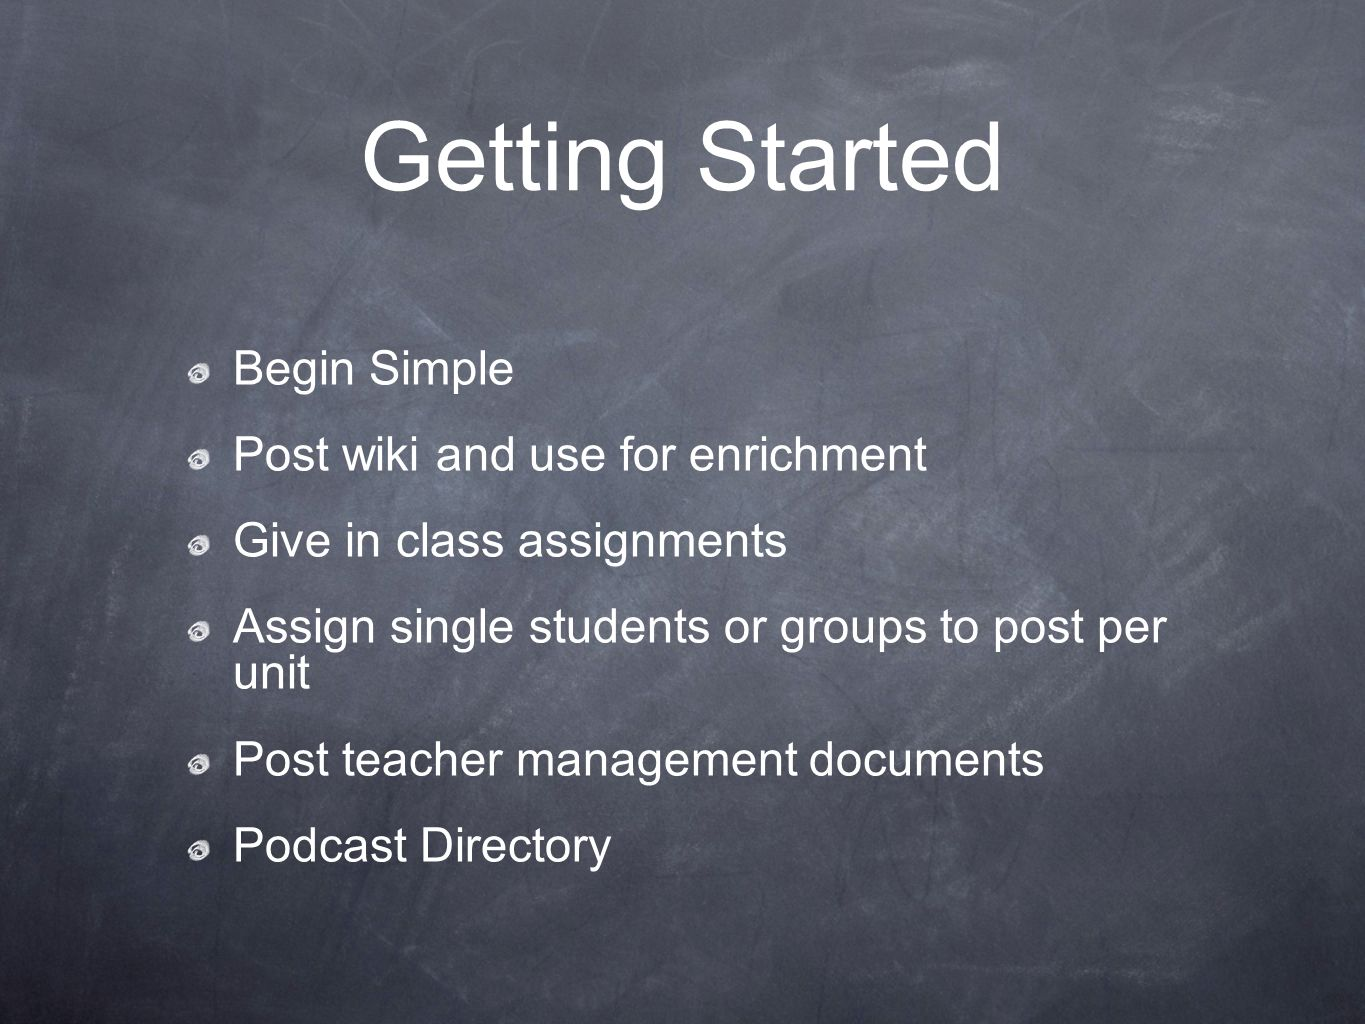 Getting Started Begin Simple Post wiki and use for enrichment Give in class assignments Assign single students or groups to post per unit Post teacher management documents Podcast Directory